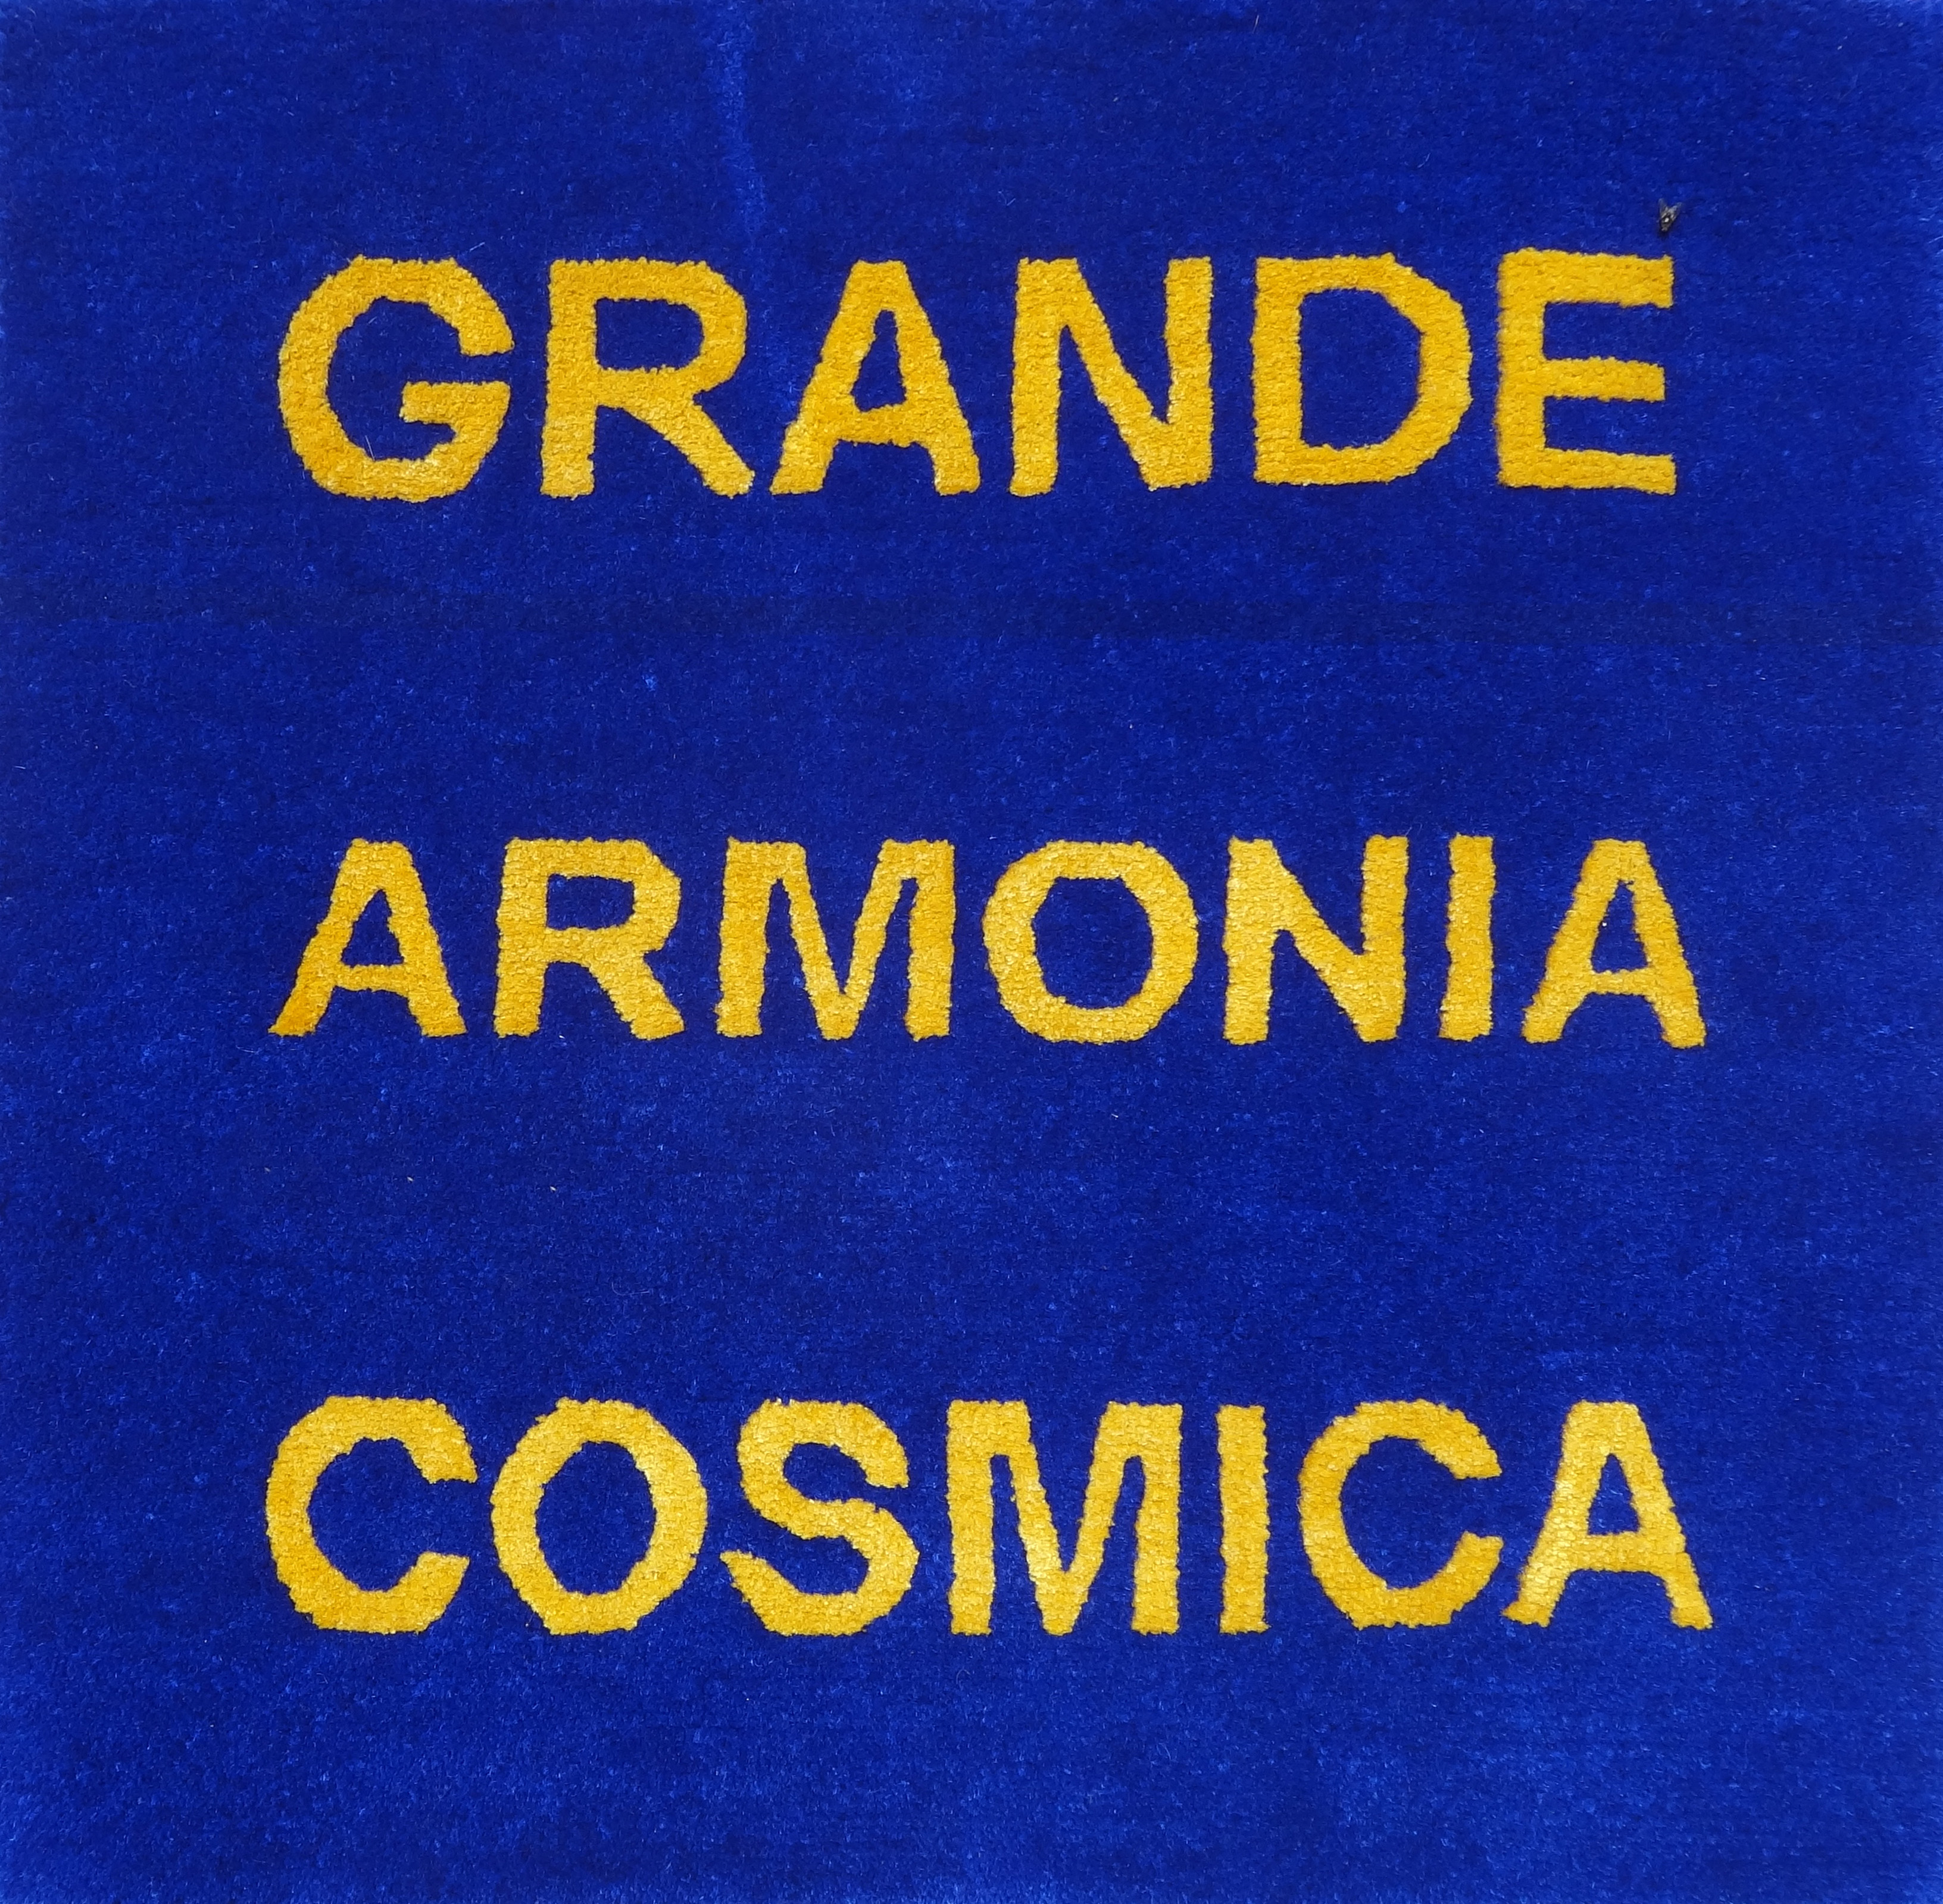 Meditation Mats Discover deep Relaxation – Grande Armonia Cosmica